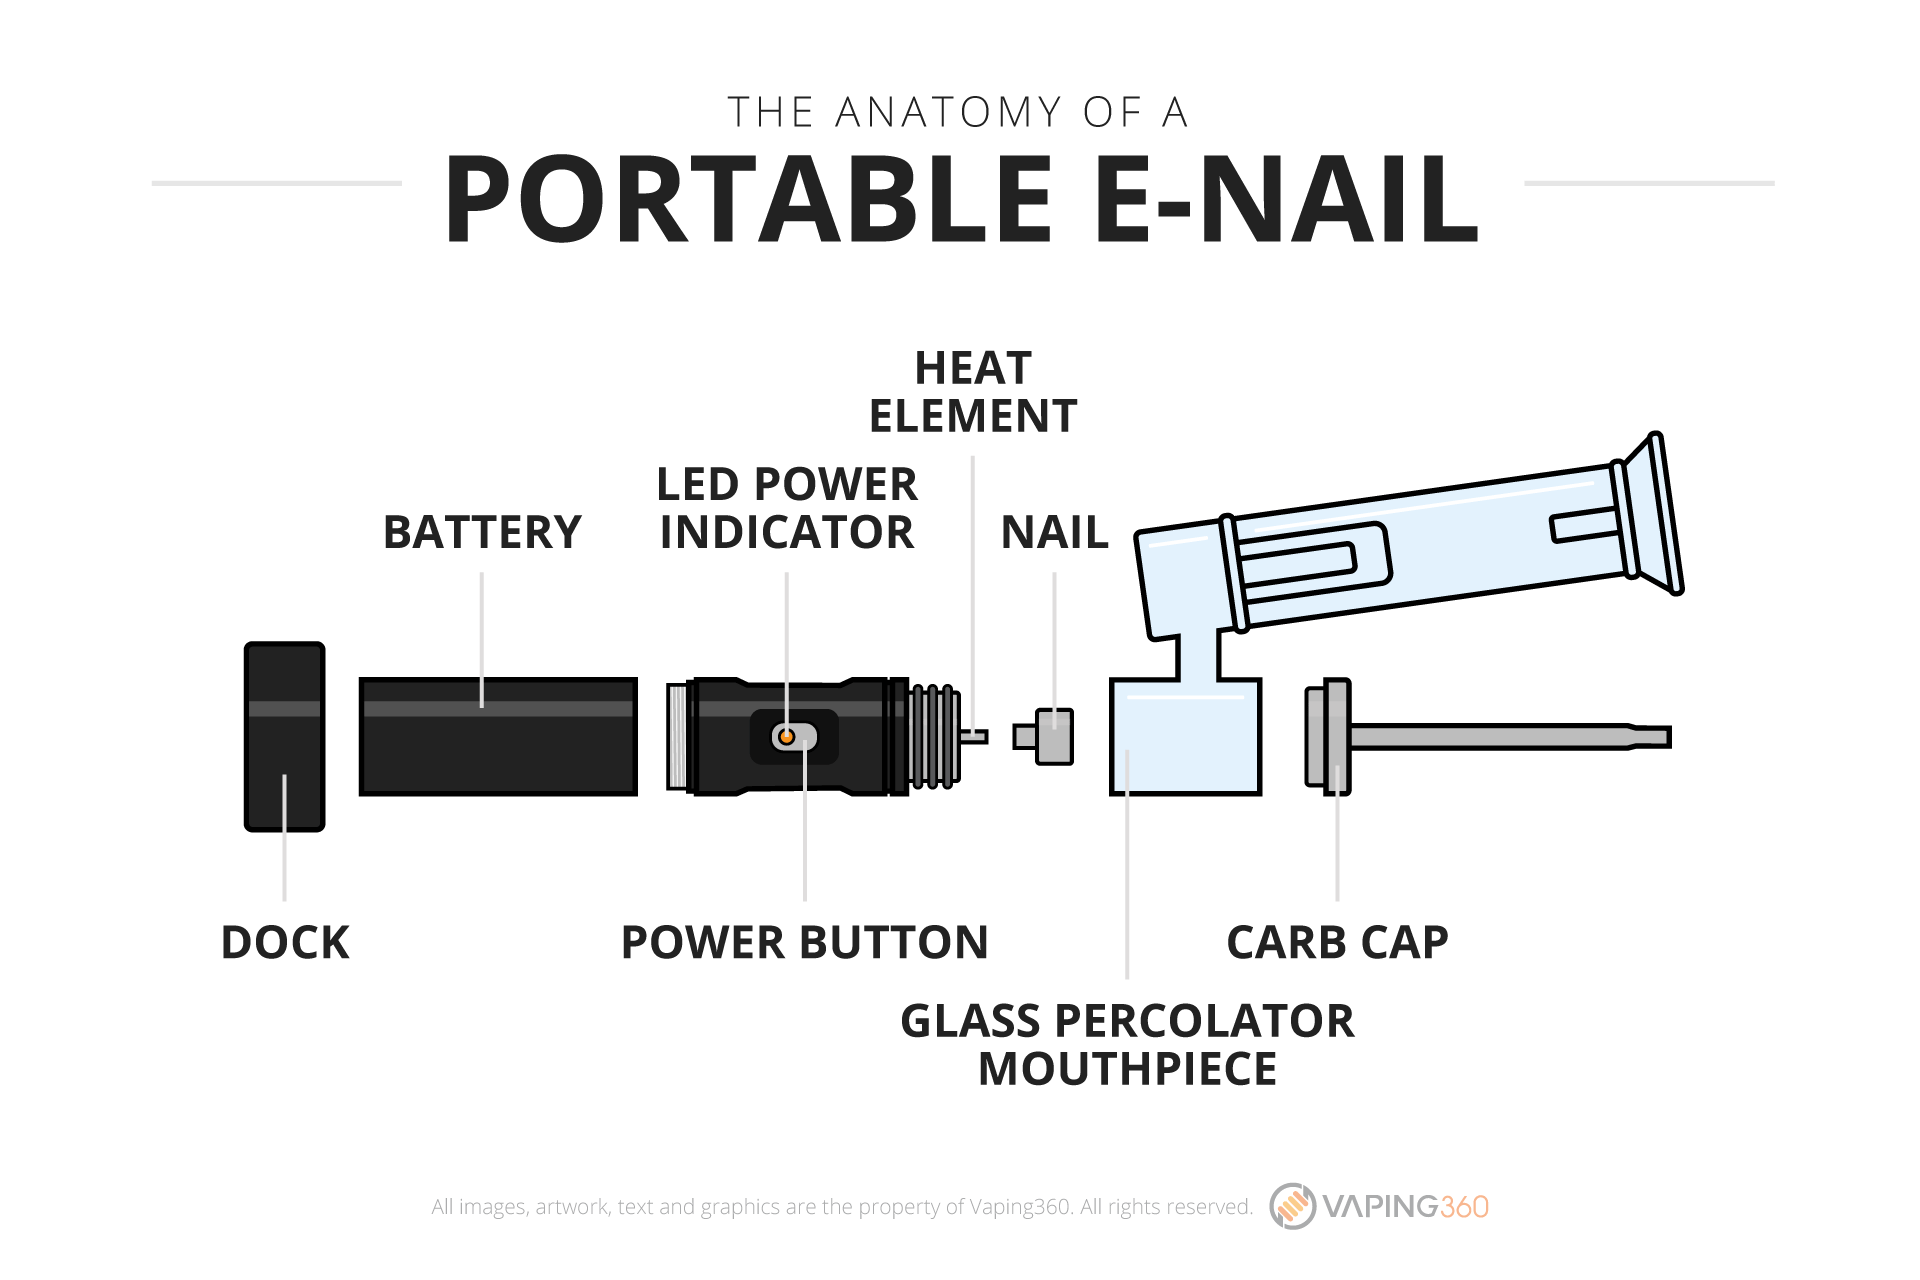 the-anatomy-of-a-portable-e-nail